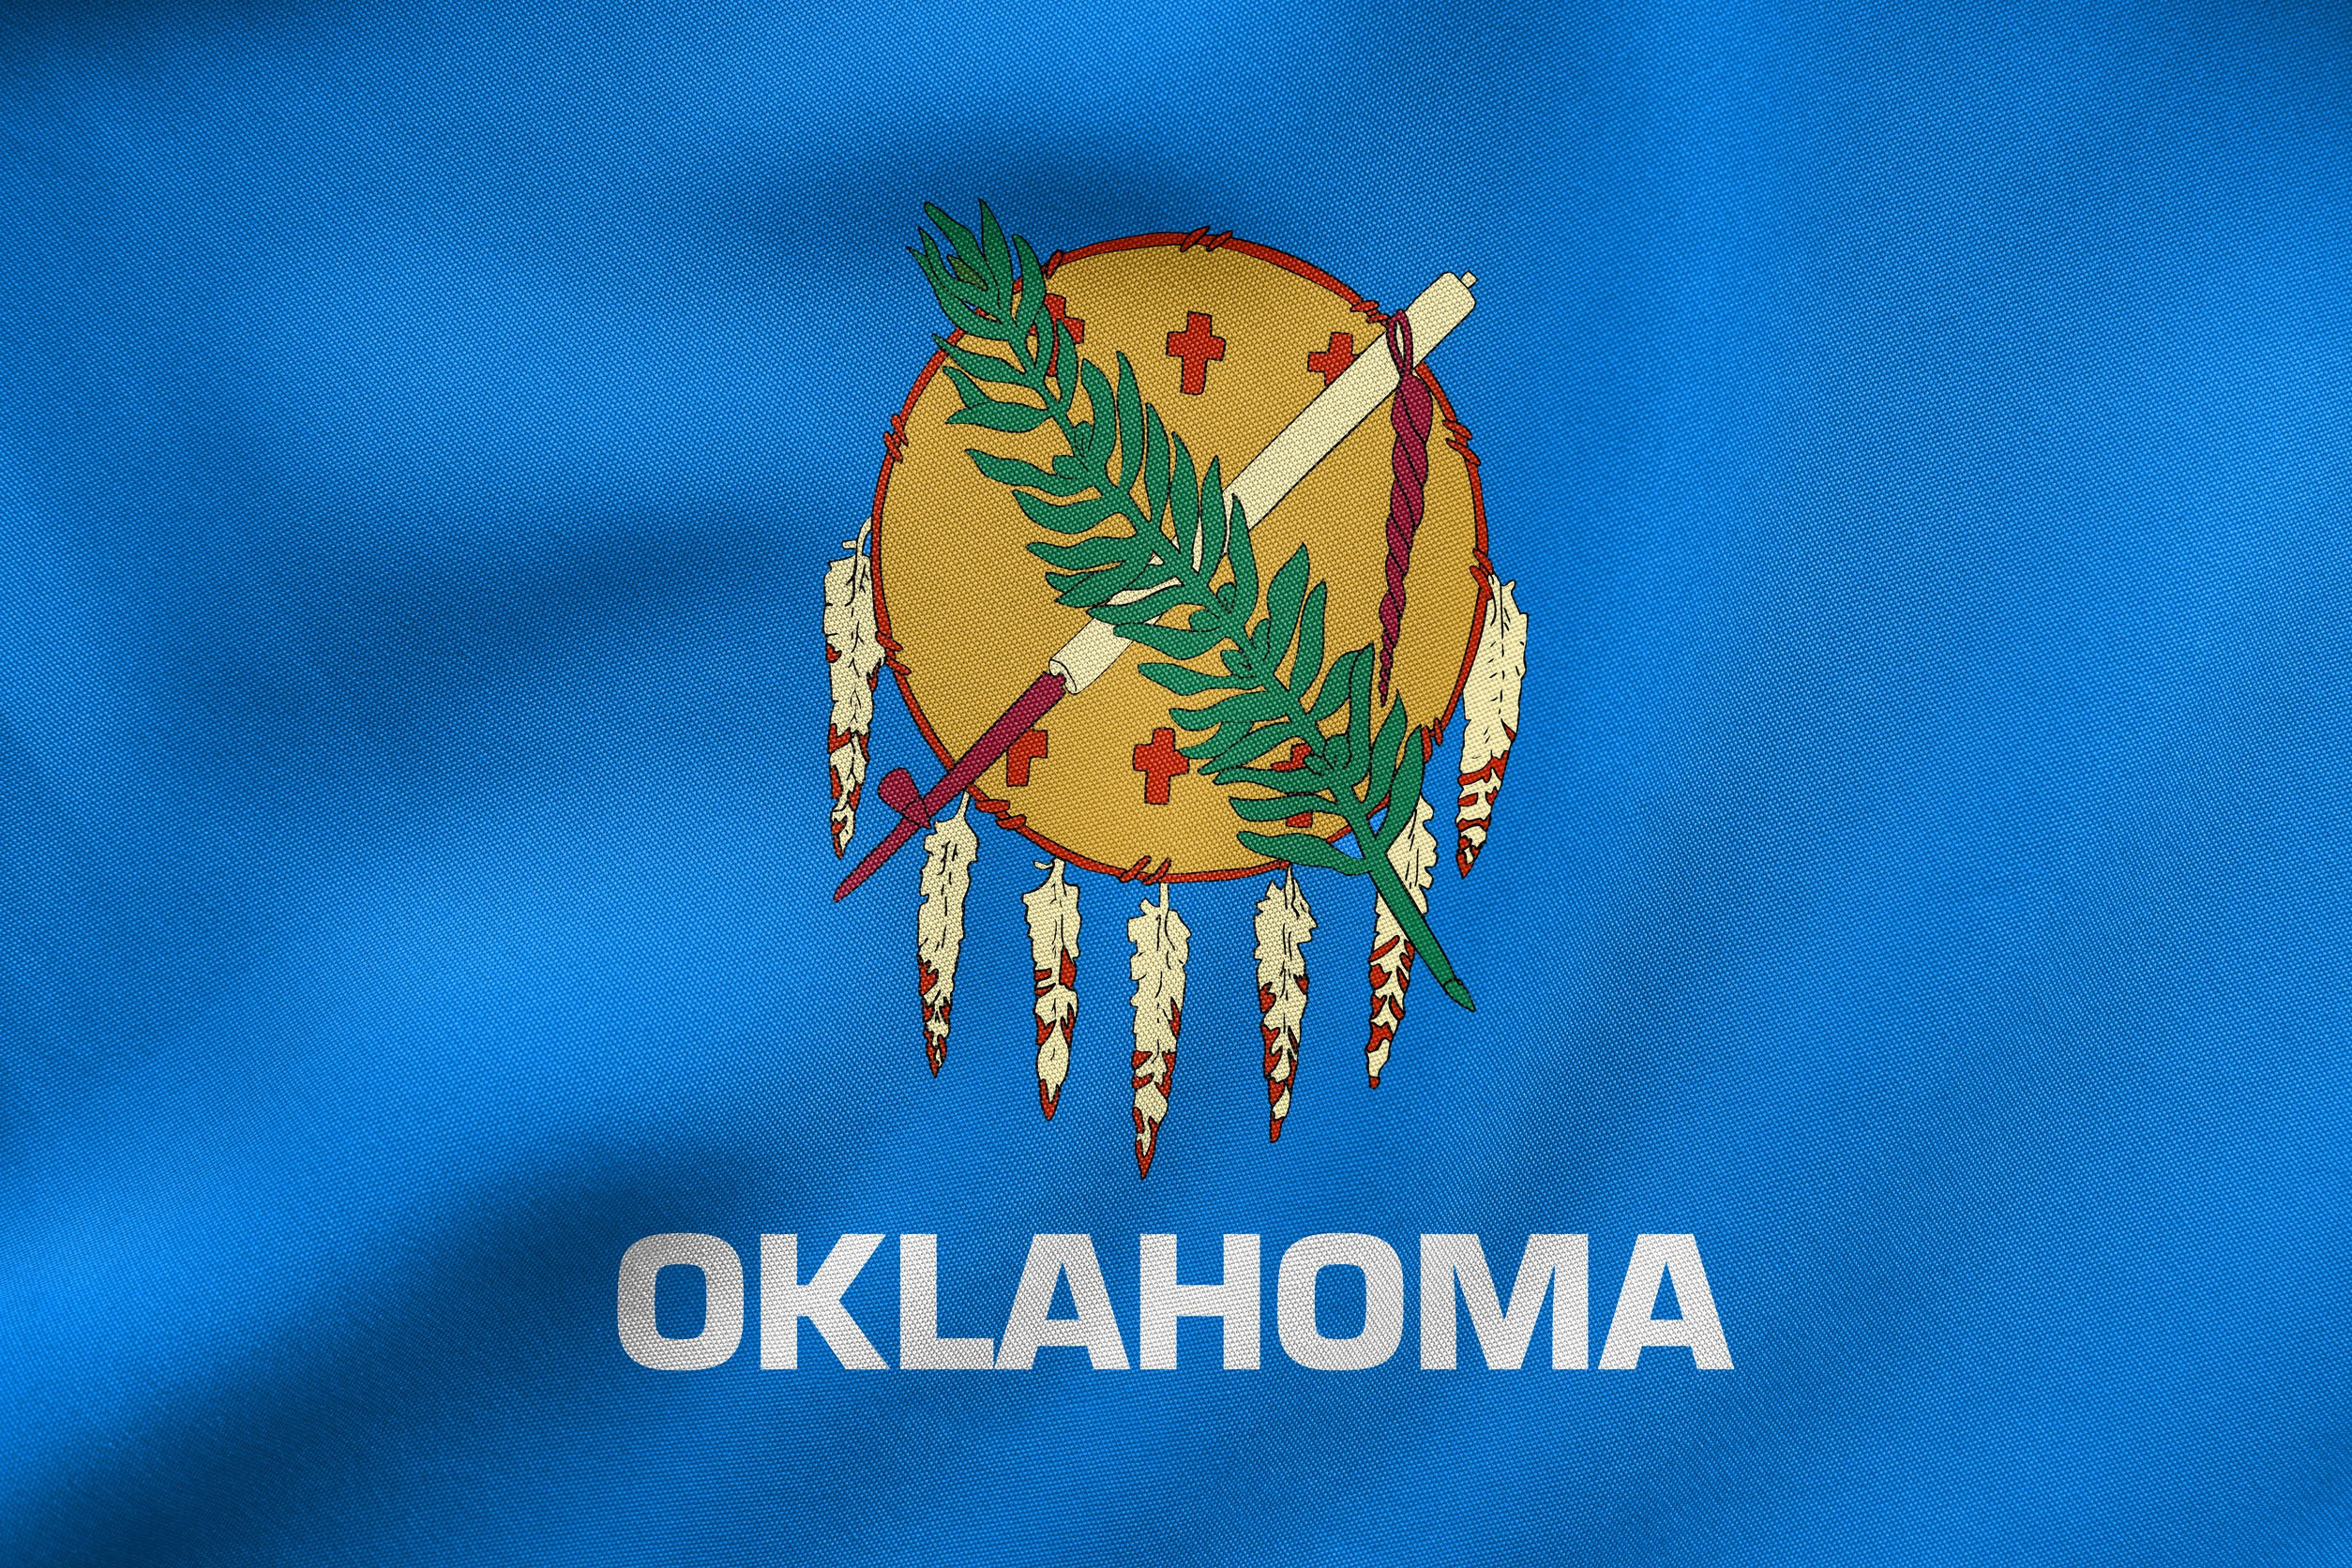 Oklahoma has OK'd more than 1,000 medical marijuana businesses